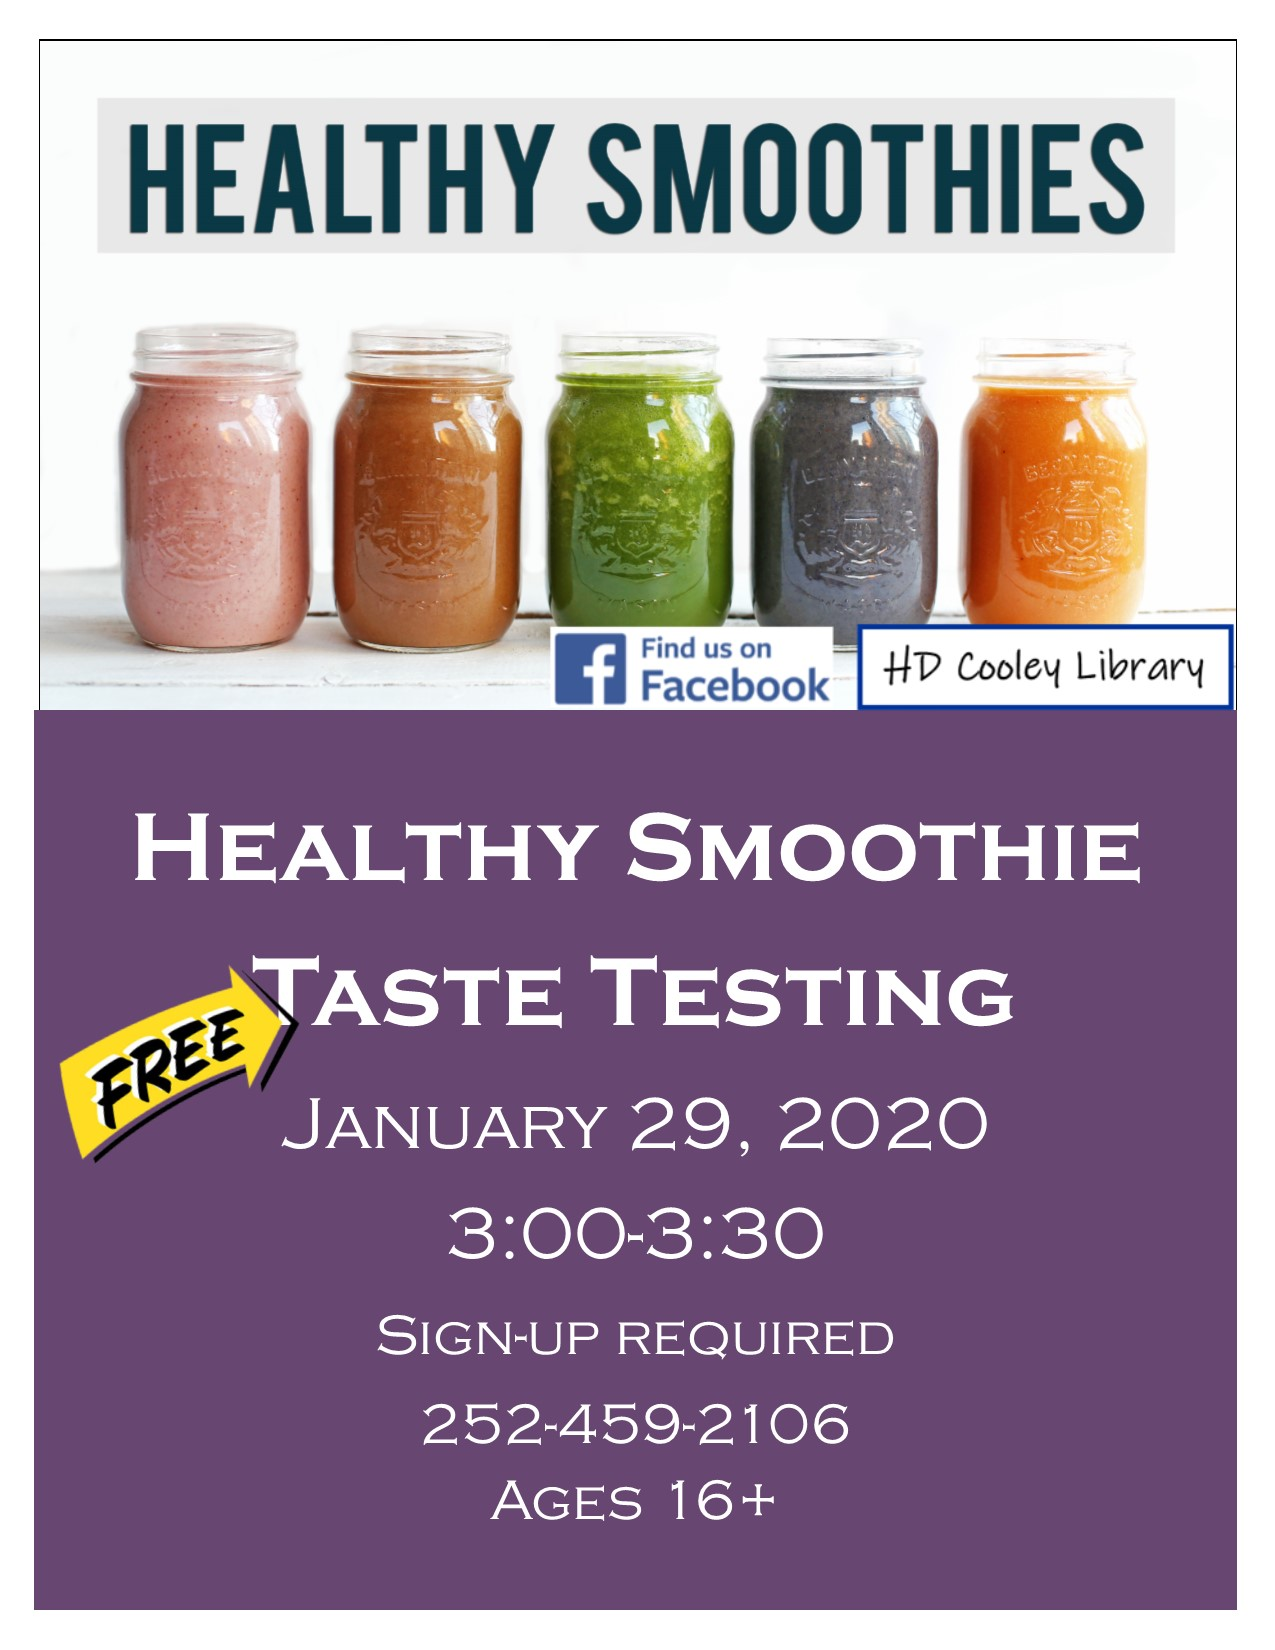 Smoothie taste testing date and time